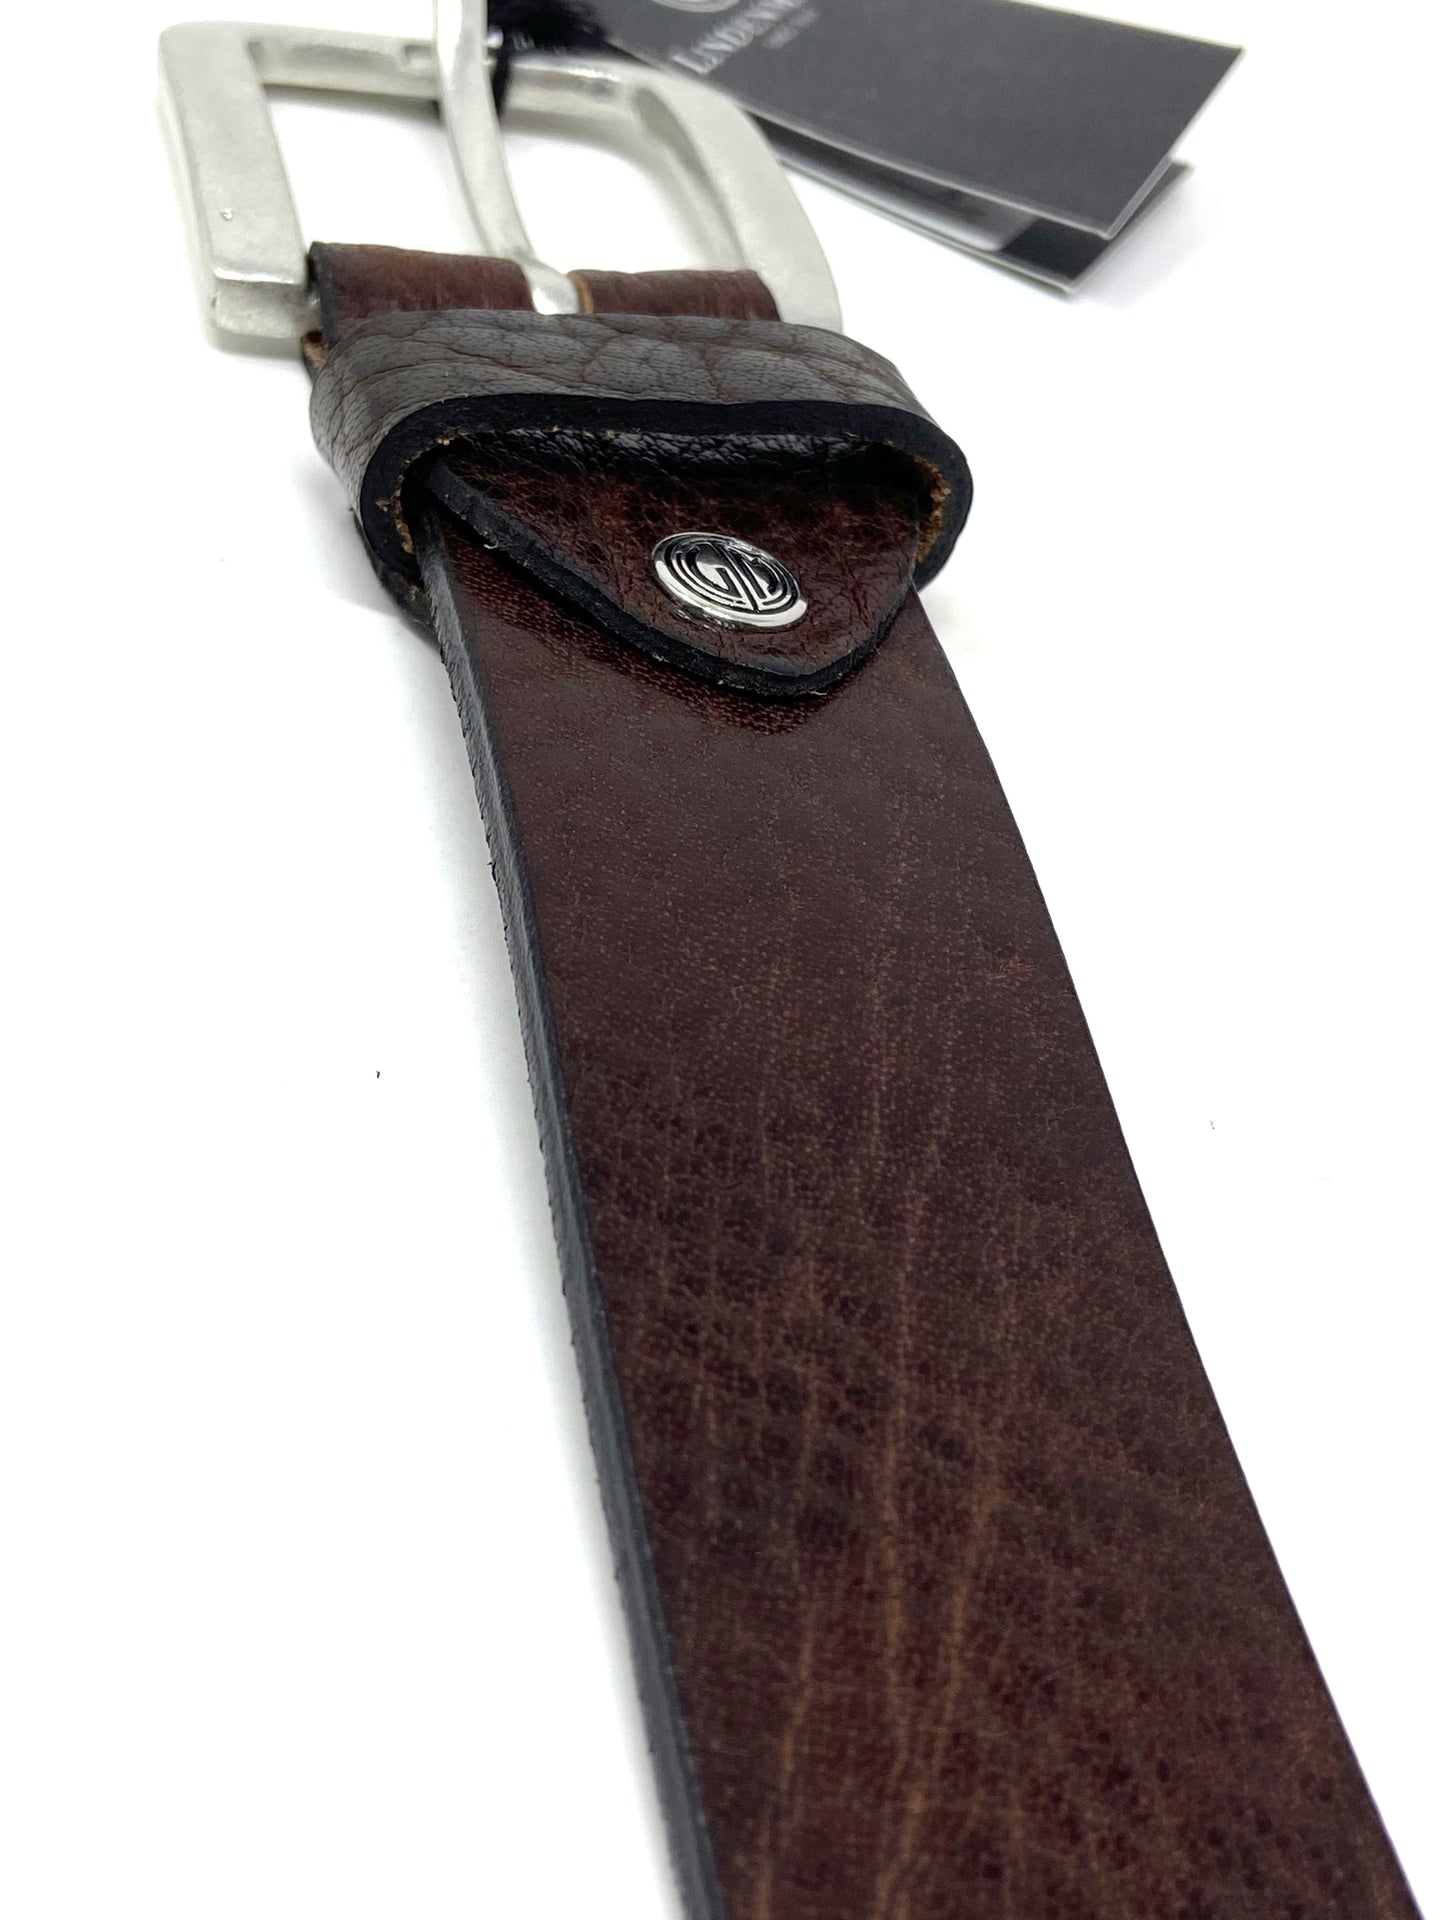 1000336 | Lindenmann Belt brown leather snakeskin design for sale online ireland